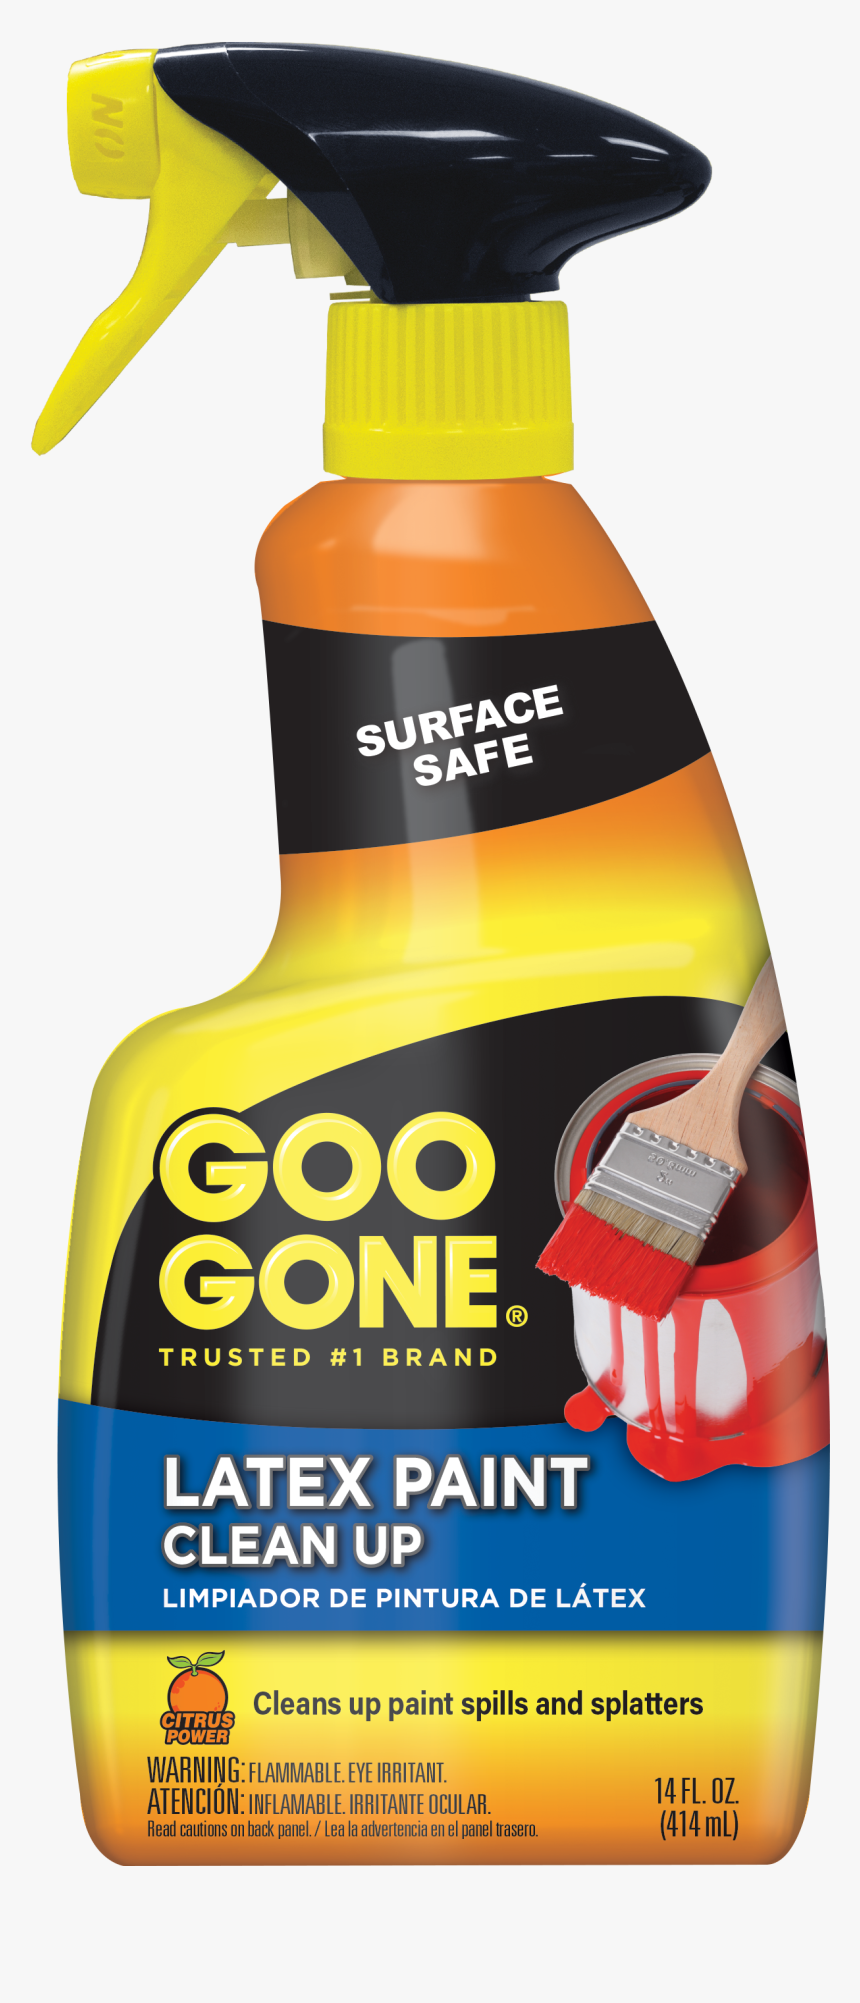 Goo Gone Grease Cleaner, HD Png Download, Free Download